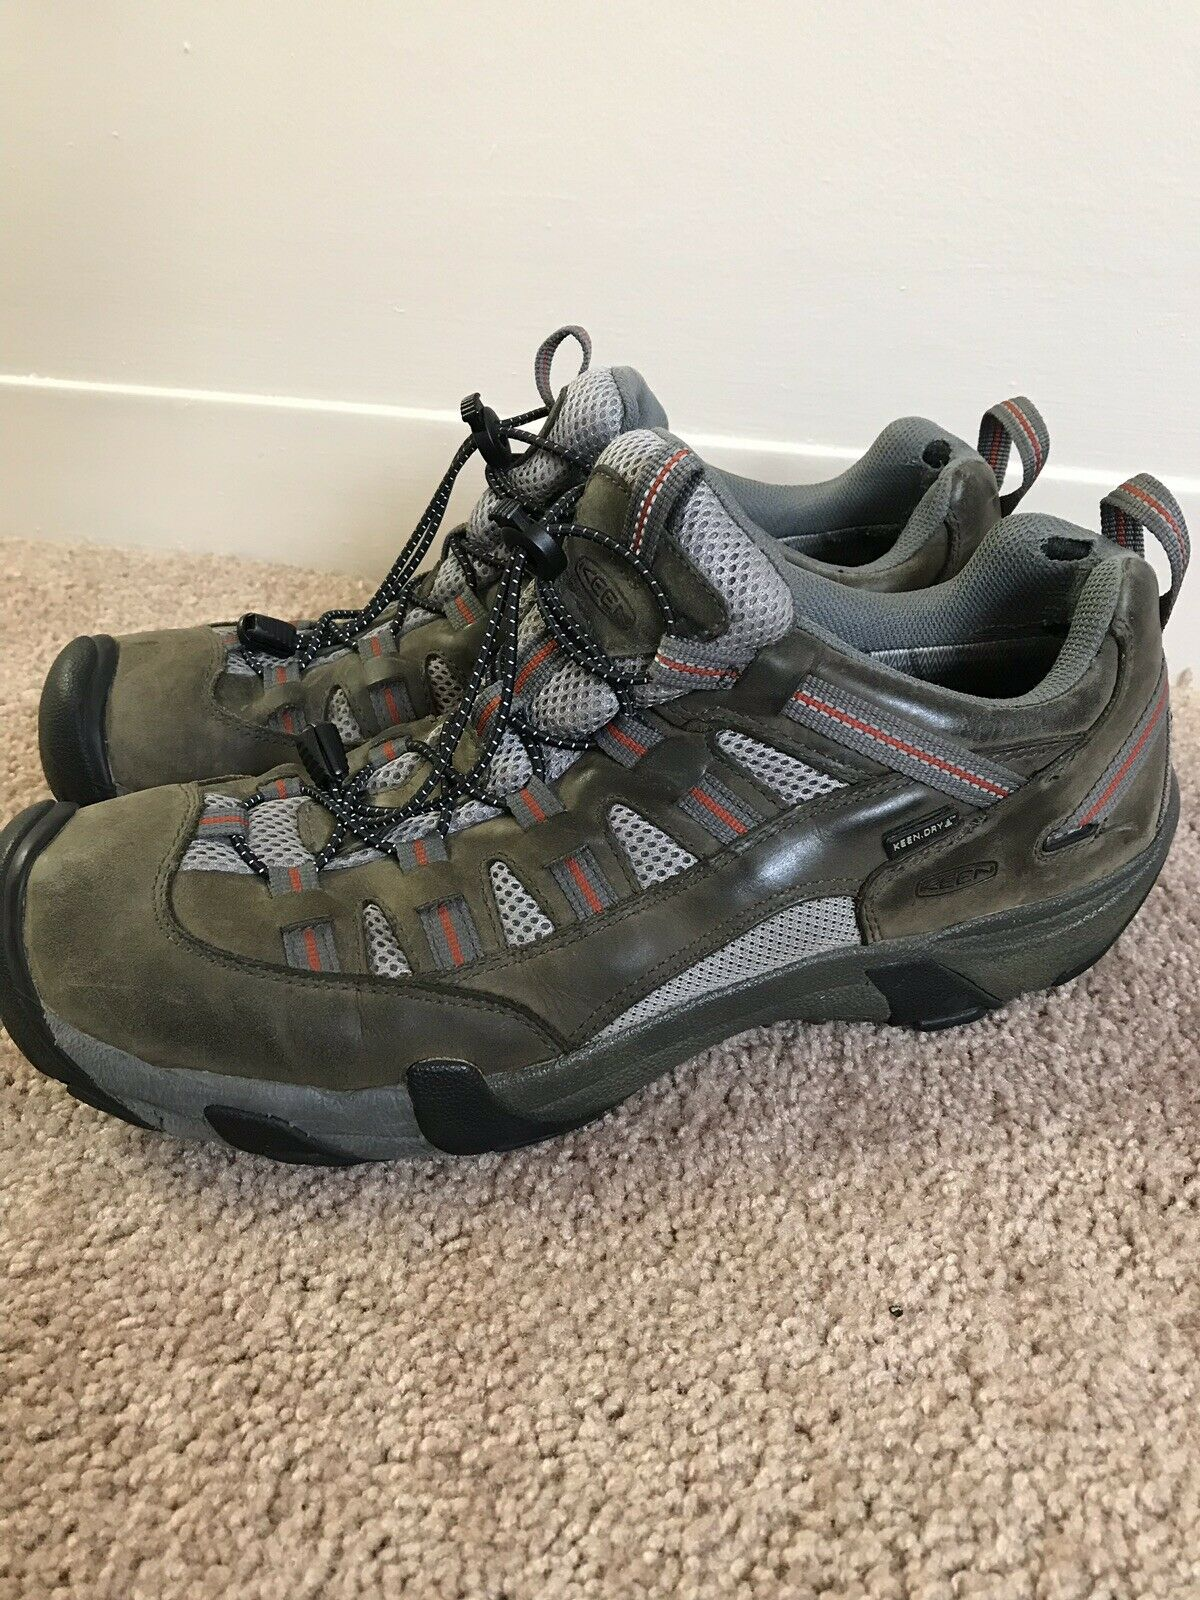 Men's Keen Dry Boot shoes  Hiking Outdoors 15  100+  best prices and freshest styles